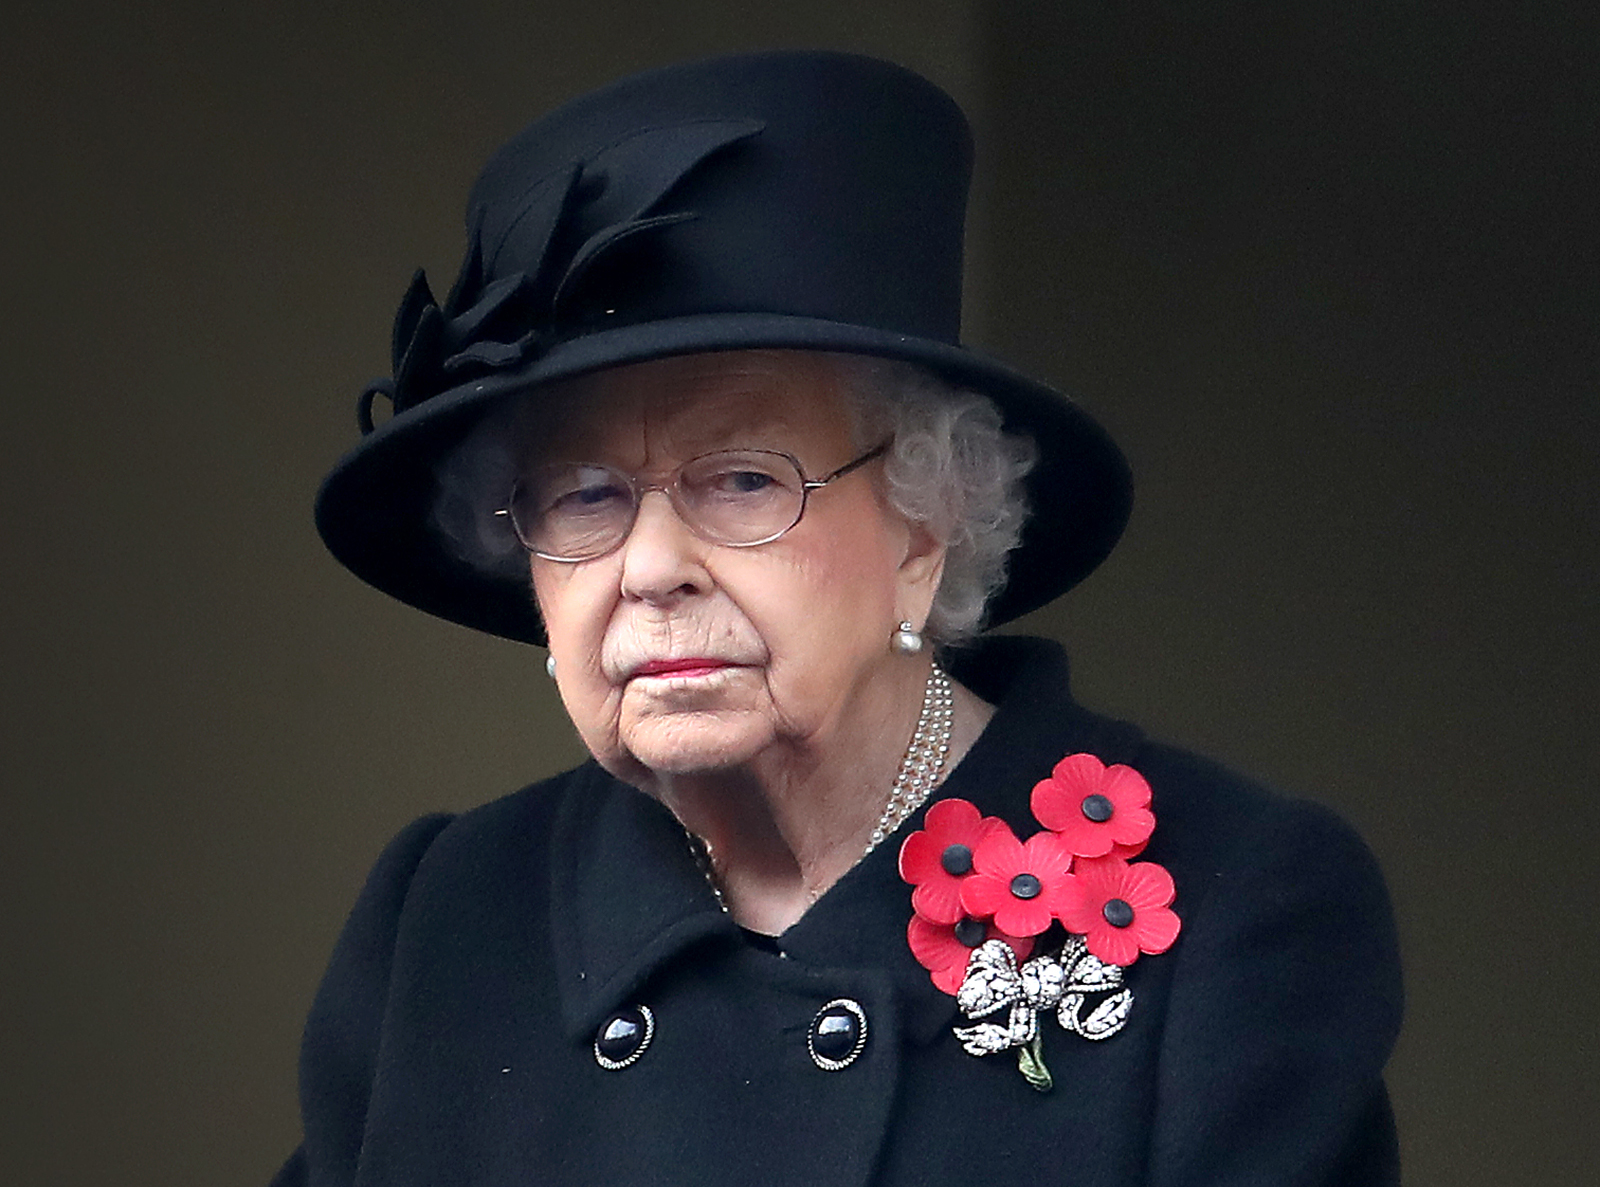 Queen Elizabeth II looks on during the Service of Remembrance at the Cenotaph at The Cenotaph on November 8, 2020 in London, England.